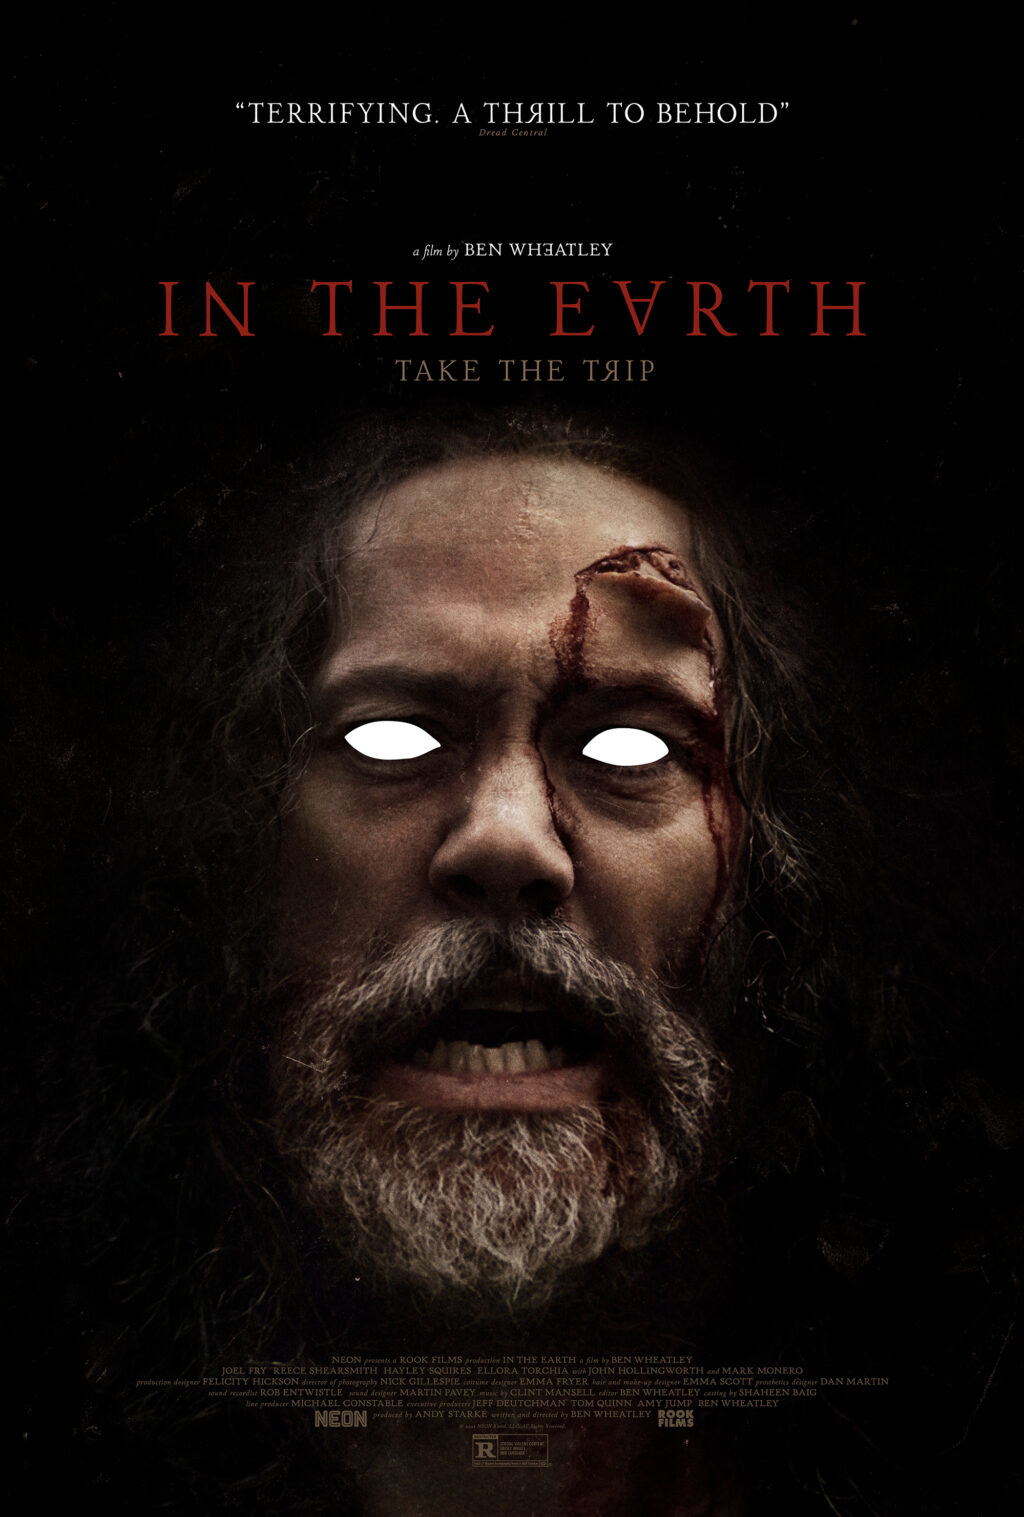 InTheEarth ReeceShearsmith 1024x1517 - 3 New IN THE EARTH Posters Include Rave Responses